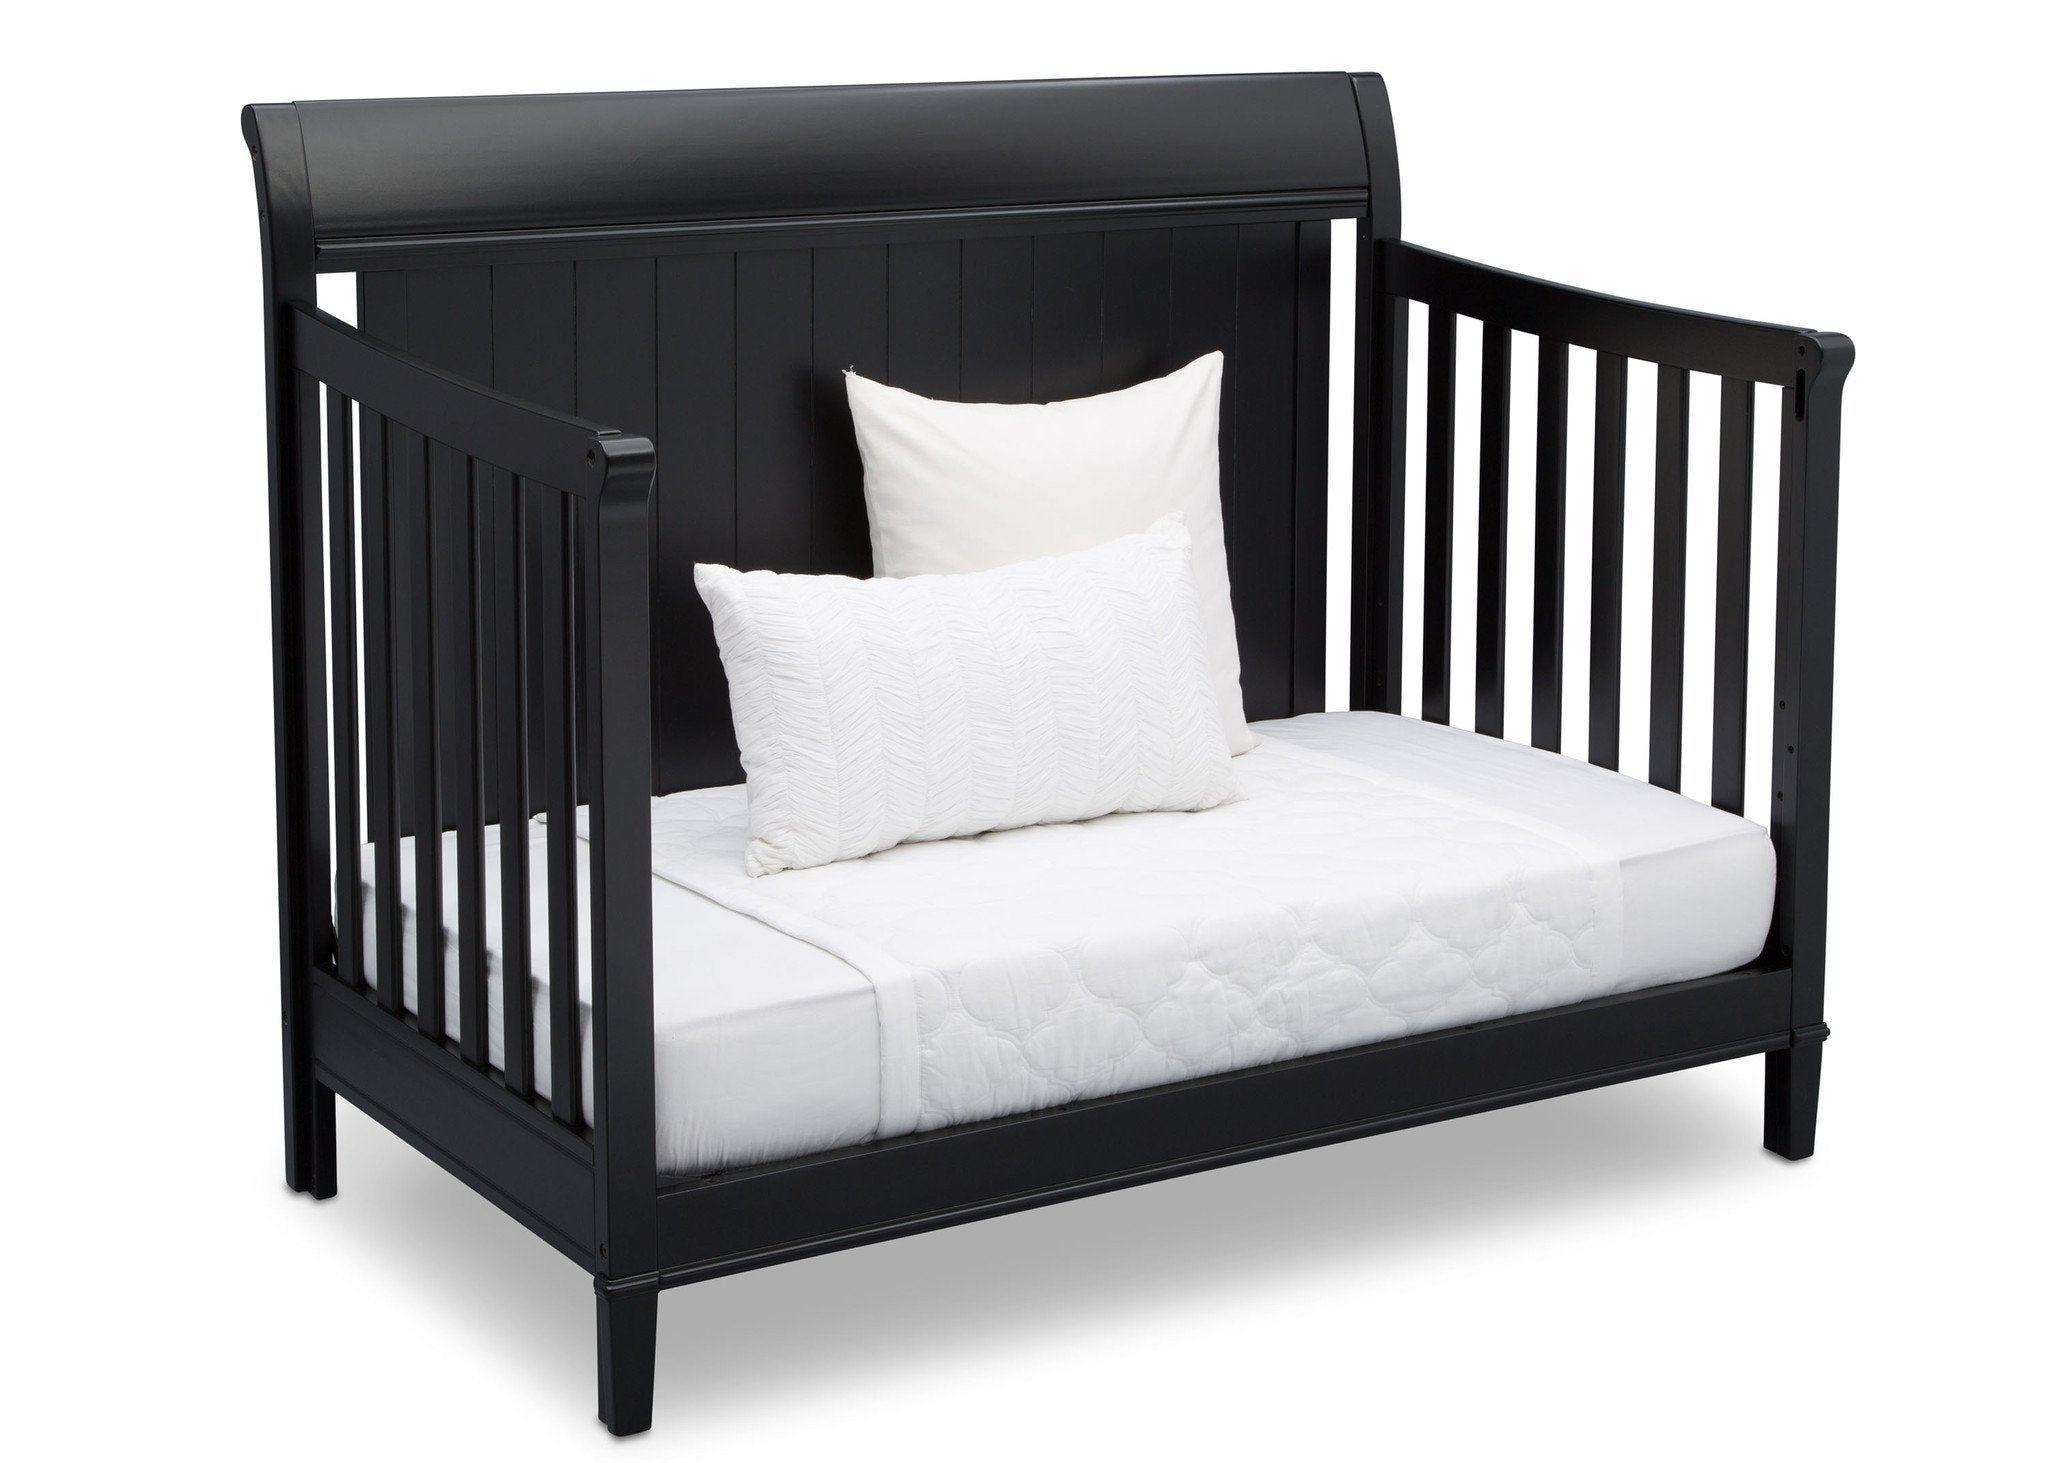 Delta Children Ebony (0011) New Haven 4-in-1 Crib, Angled Conversion to Daybed, a5a